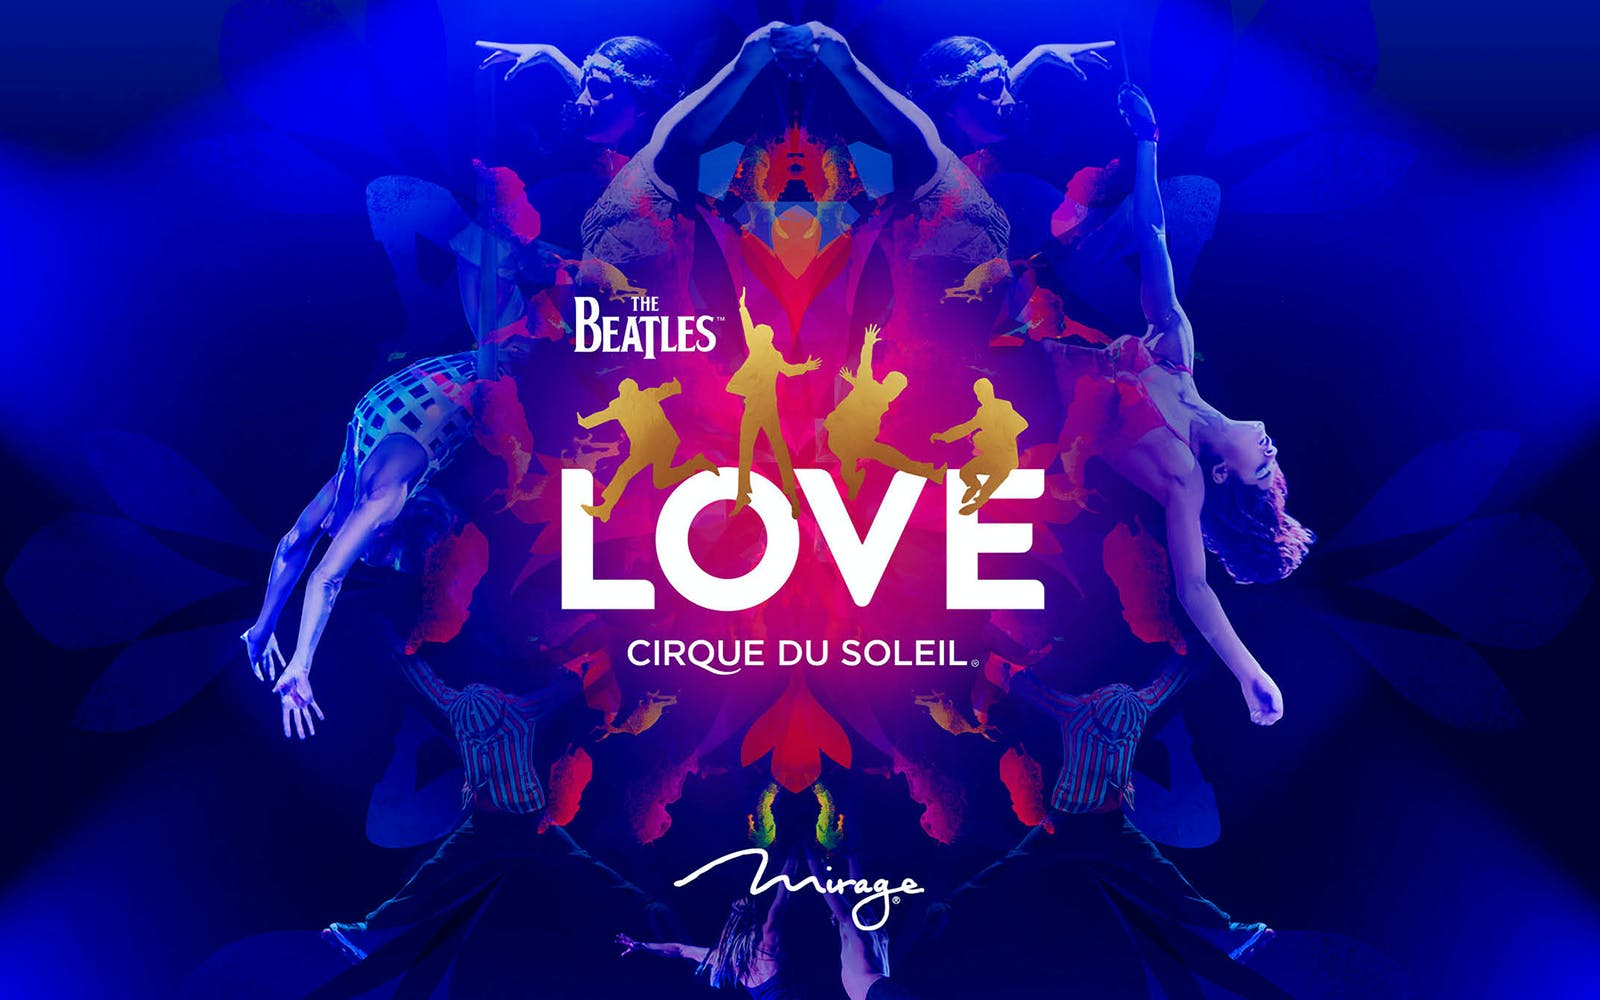 The Beatles: LOVE By Cirque du Soleil